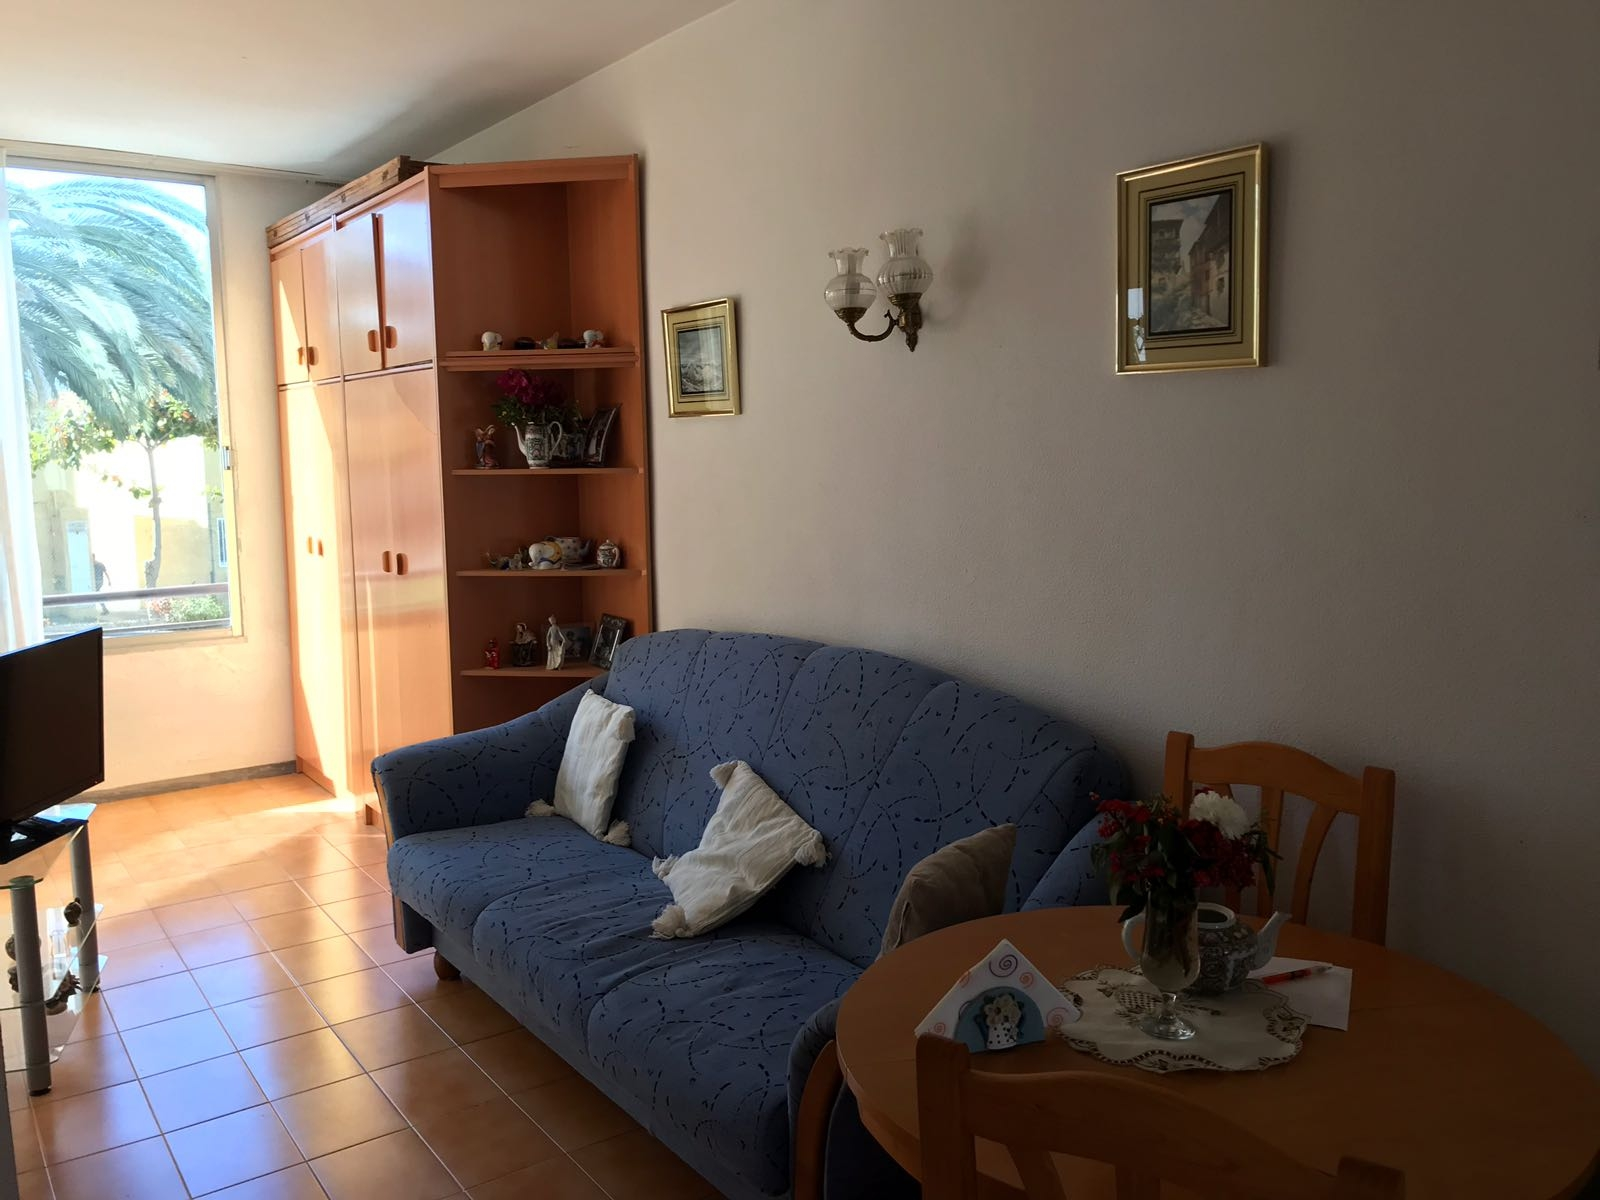 Properties for Sale in Tenerife, Canary Islands, Spain | SylkWayStar Real Estate. 1 Bedroom apartment Los Agaves. Image-22282